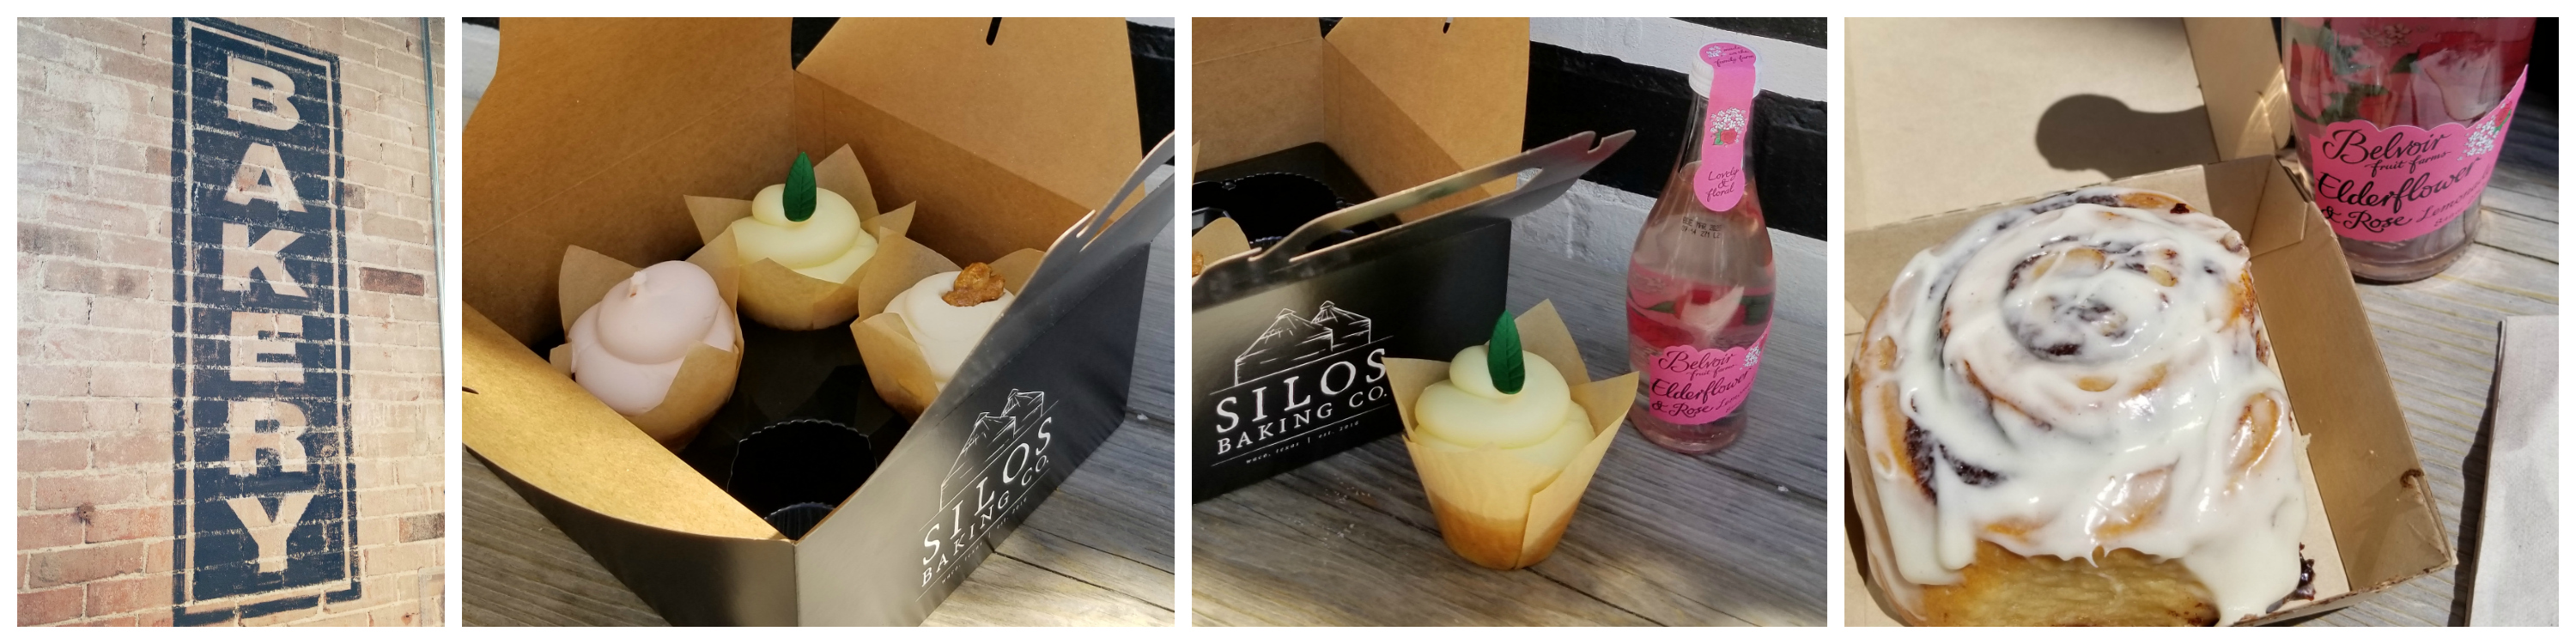 Cupcakes, Cinnamon Rolls, Silo Baking Co